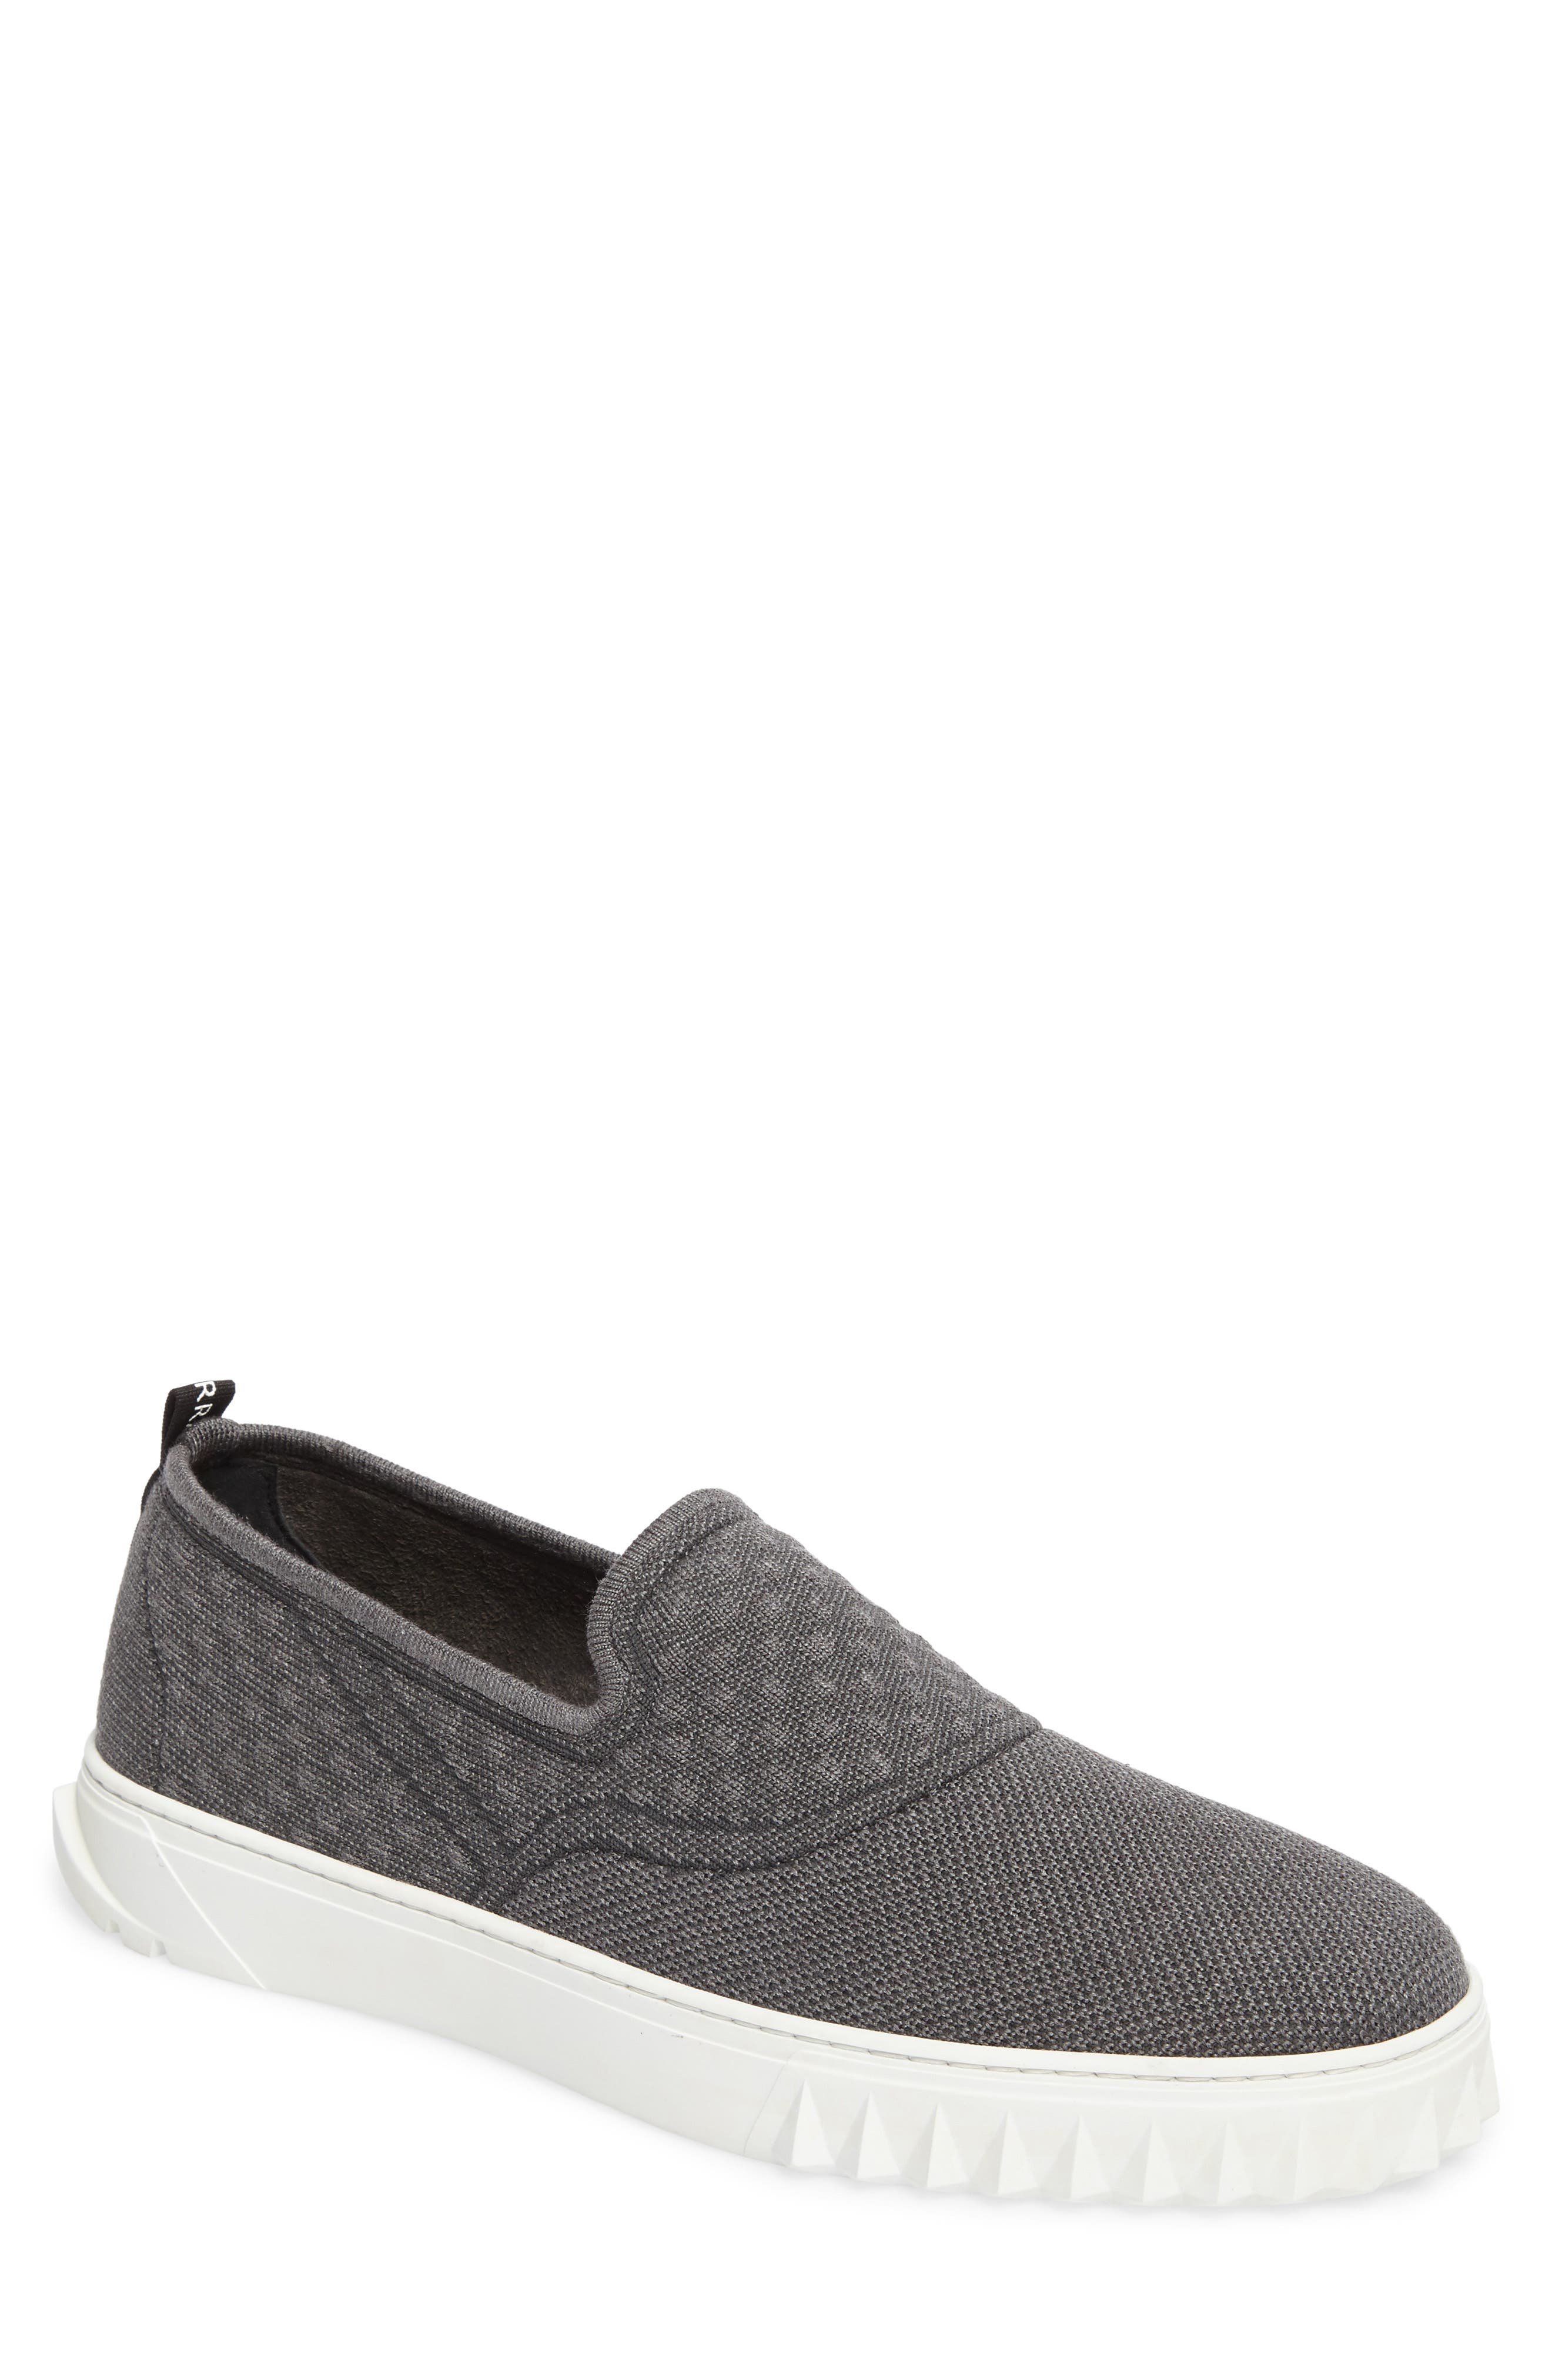 Clay Slip-On Sneaker,                             Main thumbnail 1, color,                             Charcoal